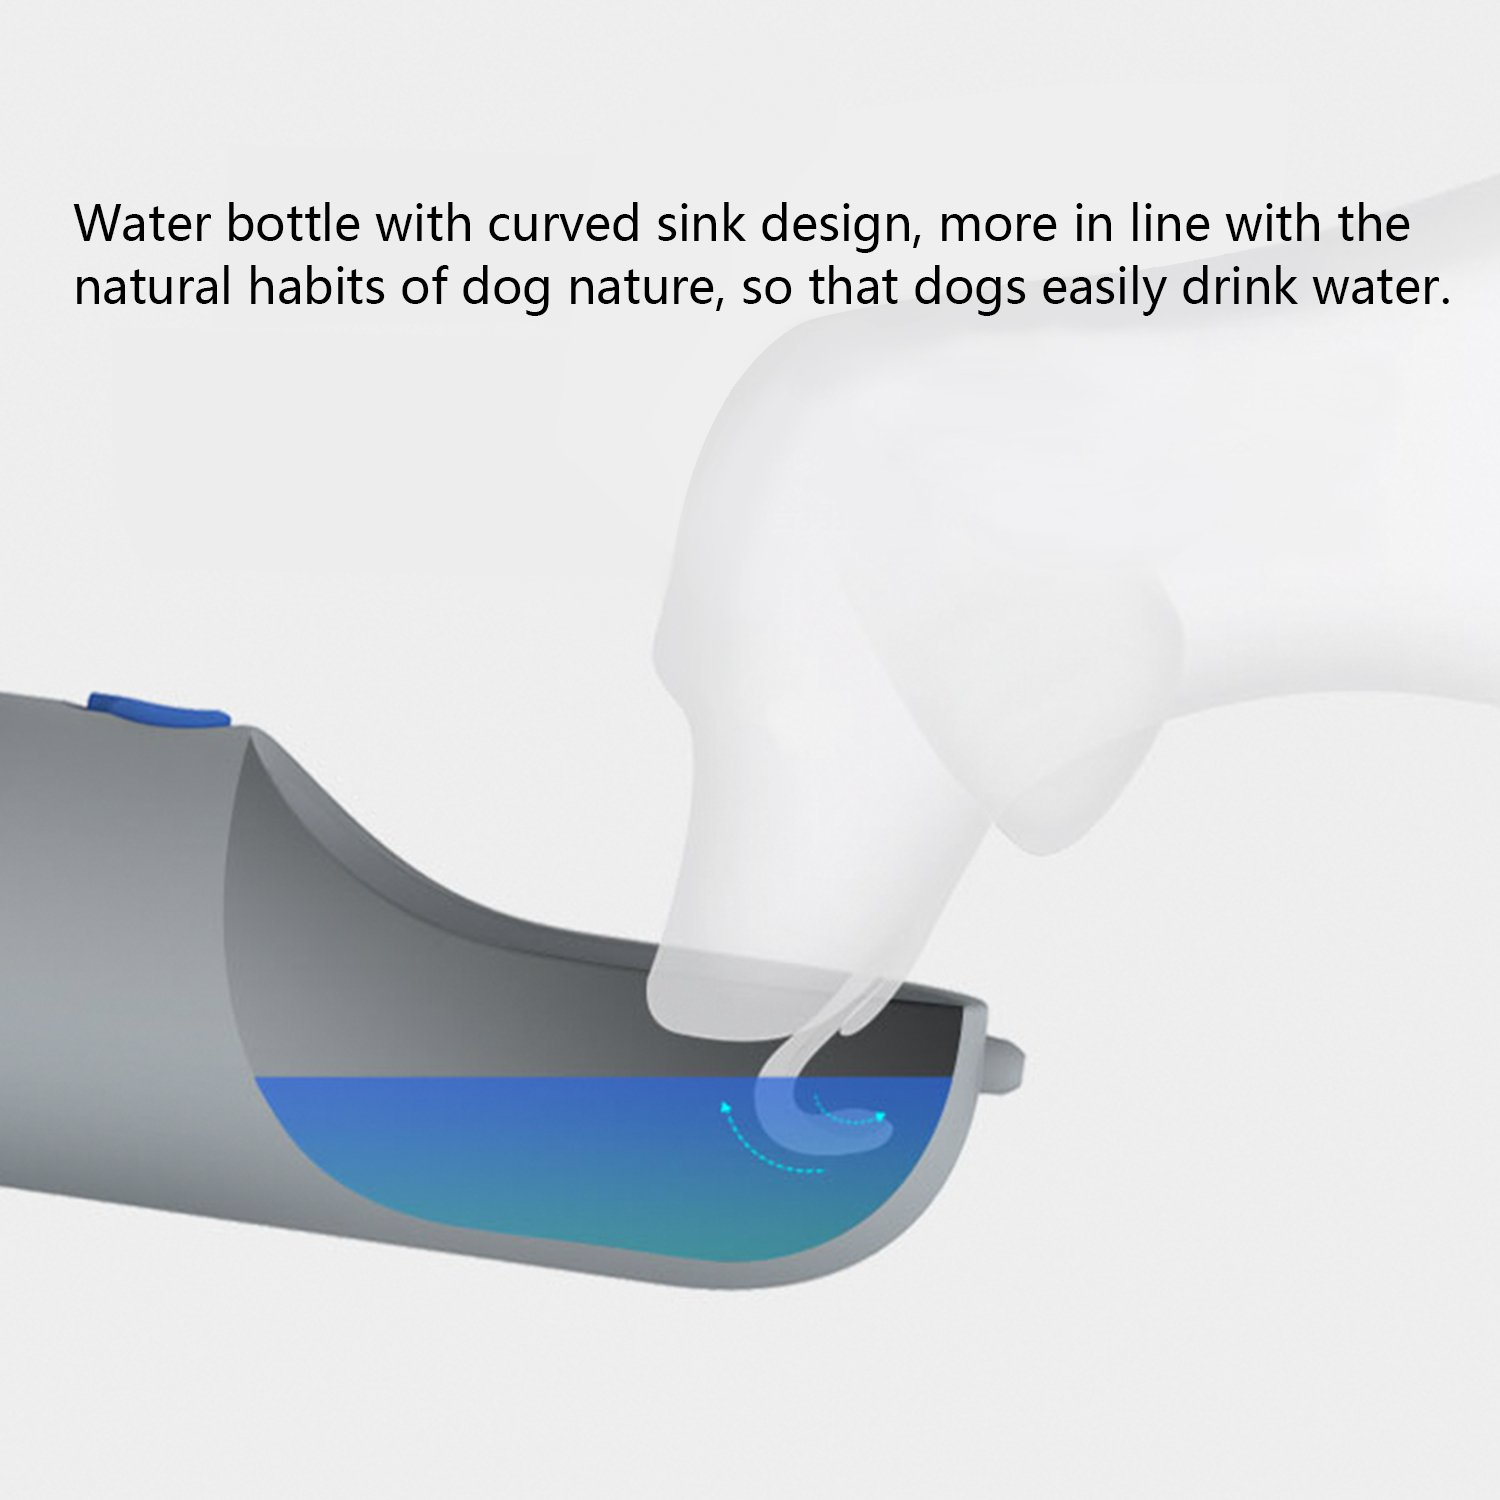 Dog Water Bottle for Walking, Pet Water Dispenser Fashion Antibacterial Portable Dog Cat Travel Water Drink Bottle Bowl Dispenser Feeder Including 2 Filter Elements, Dogs Outdoor Drinking Cup-400ml by XUANRUS (Image #6)